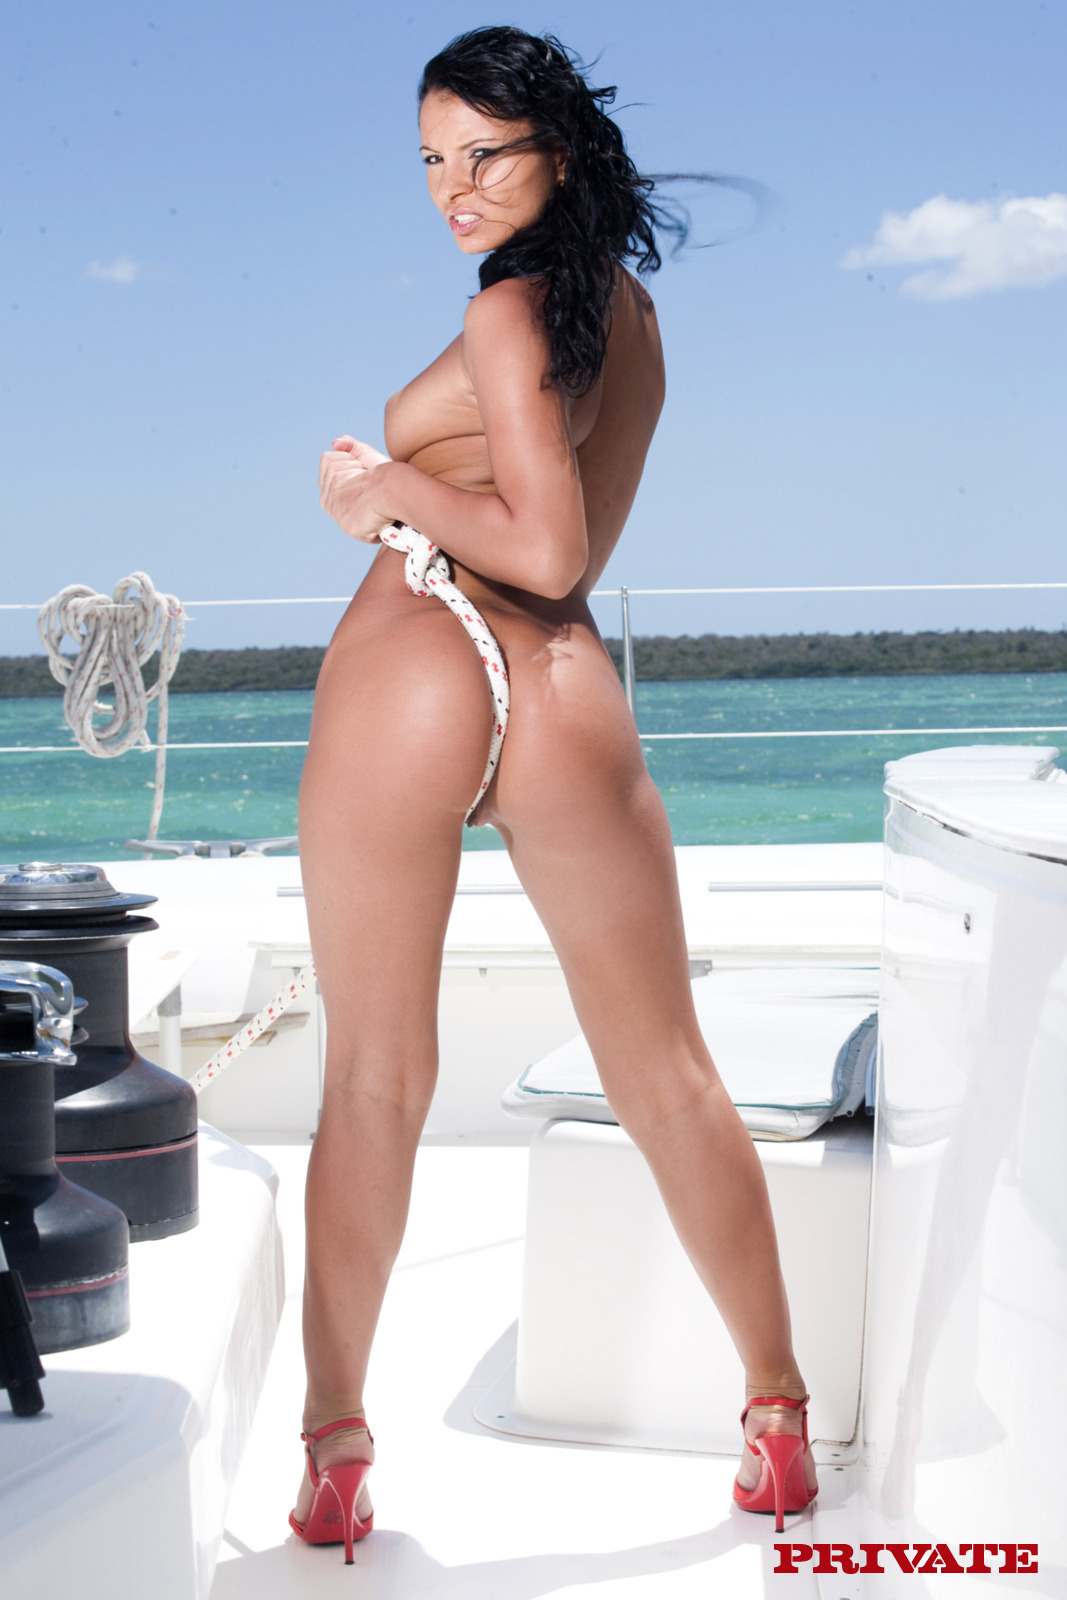 cdnhw galleries private Lucy Belle Boroka Does The Caribbean 7